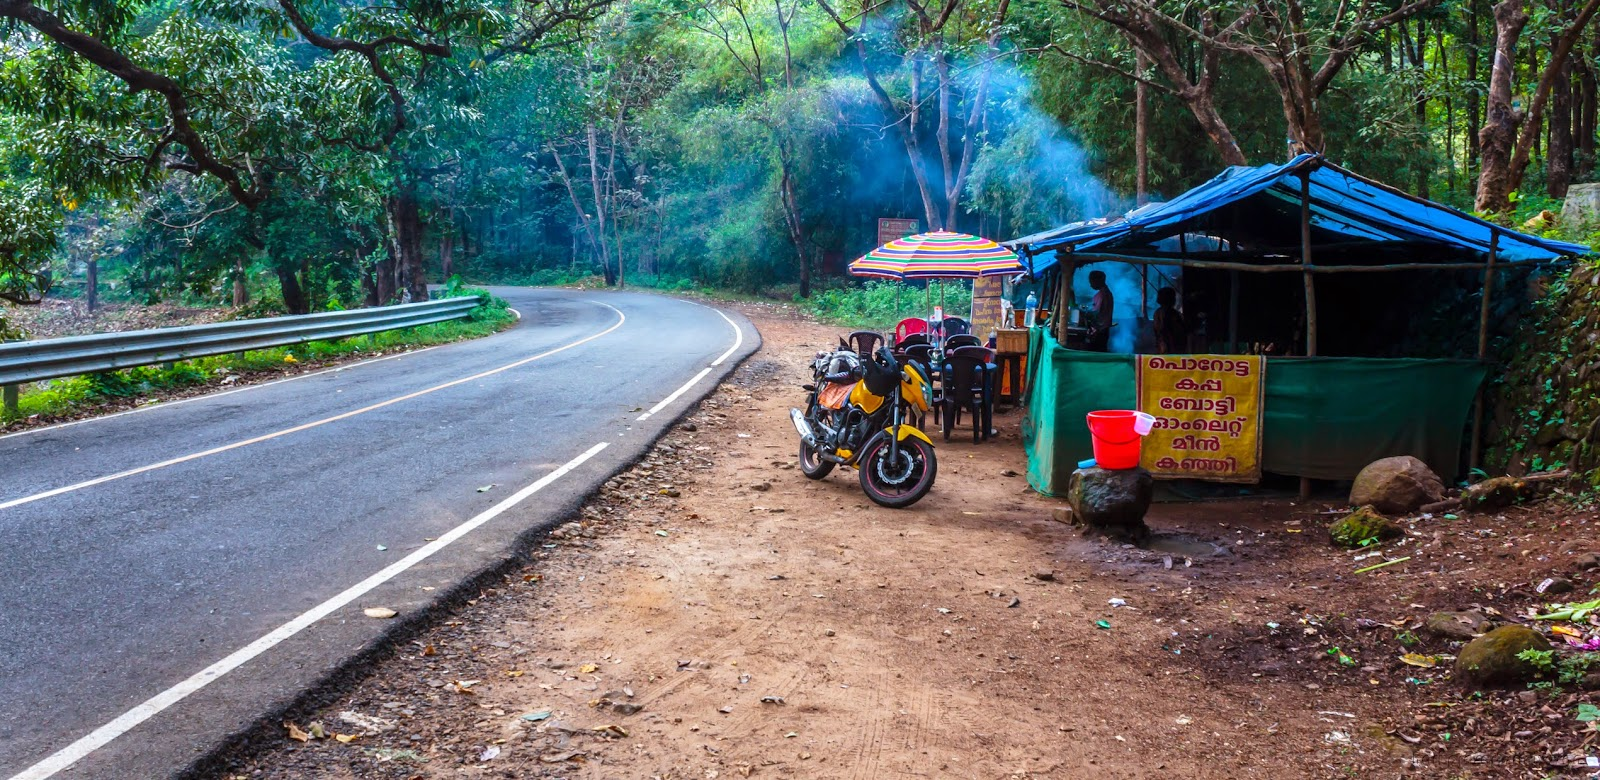 Road side eatery on the way from Athirapally to Chalakudy